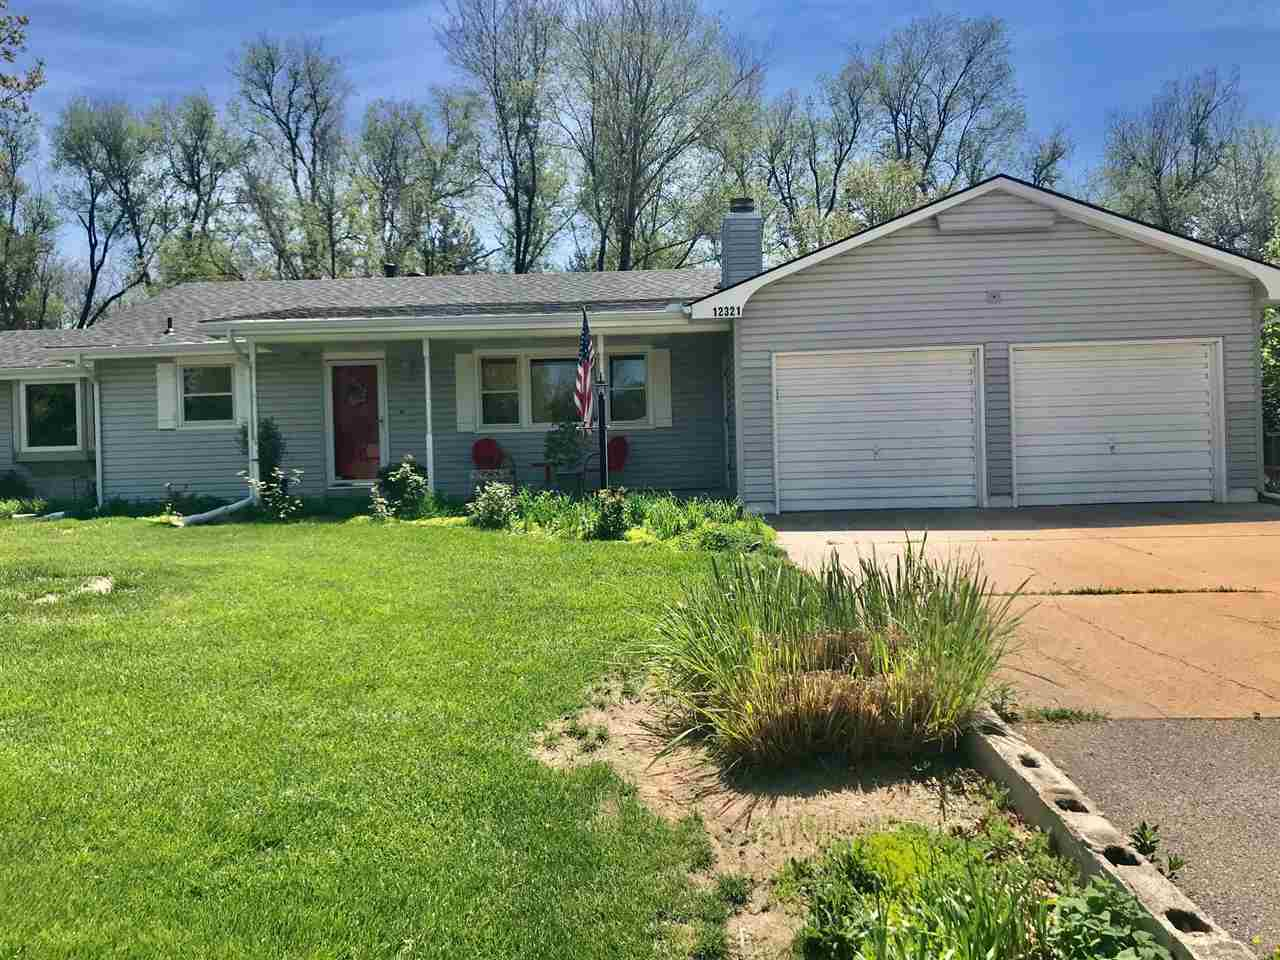 Great country type home in the City.  2 bedroom, 1 1/2 baths, 2 car garage, partial basement.  All appliances are included as per PCR.  Plenty of room on the front porch to enjoy the quiet.  Then..there's a two level deck on the back of the home, covered so you can even be out in the rain!  This is maintenance free as it has permanent siding, the roof and guttering were replaced in 2019 as well as painting trim in 2019, that should help insurance costs a LOT!  All of this with loads of room around it, all on a HALF ACRE LOT!  There was a special tax for front street paving but it is PAID OFF as well.  There is a small garden shed in the backyard and just loads of room for landscaping, building an extra building for the car lover or motorcycle enthusiast or expanding the house! If you want to live in a neighborhood, this is it!  I've met the neighbors and they were all great!!!